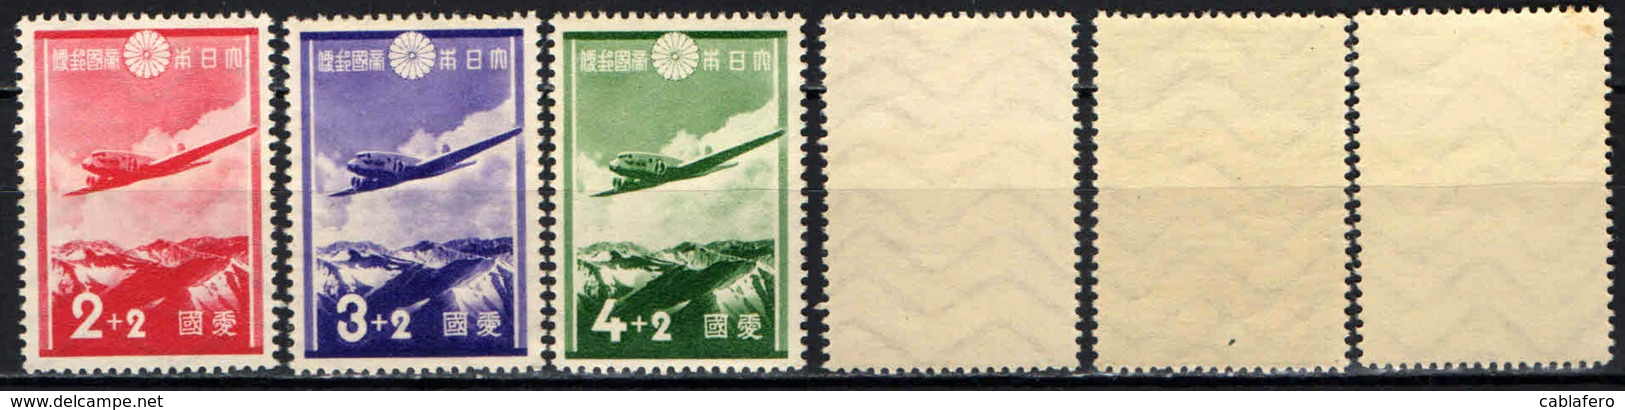 GIAPPONE - 1937 - Douglas Plane Over Japan Alps - MNH - Unused Stamps